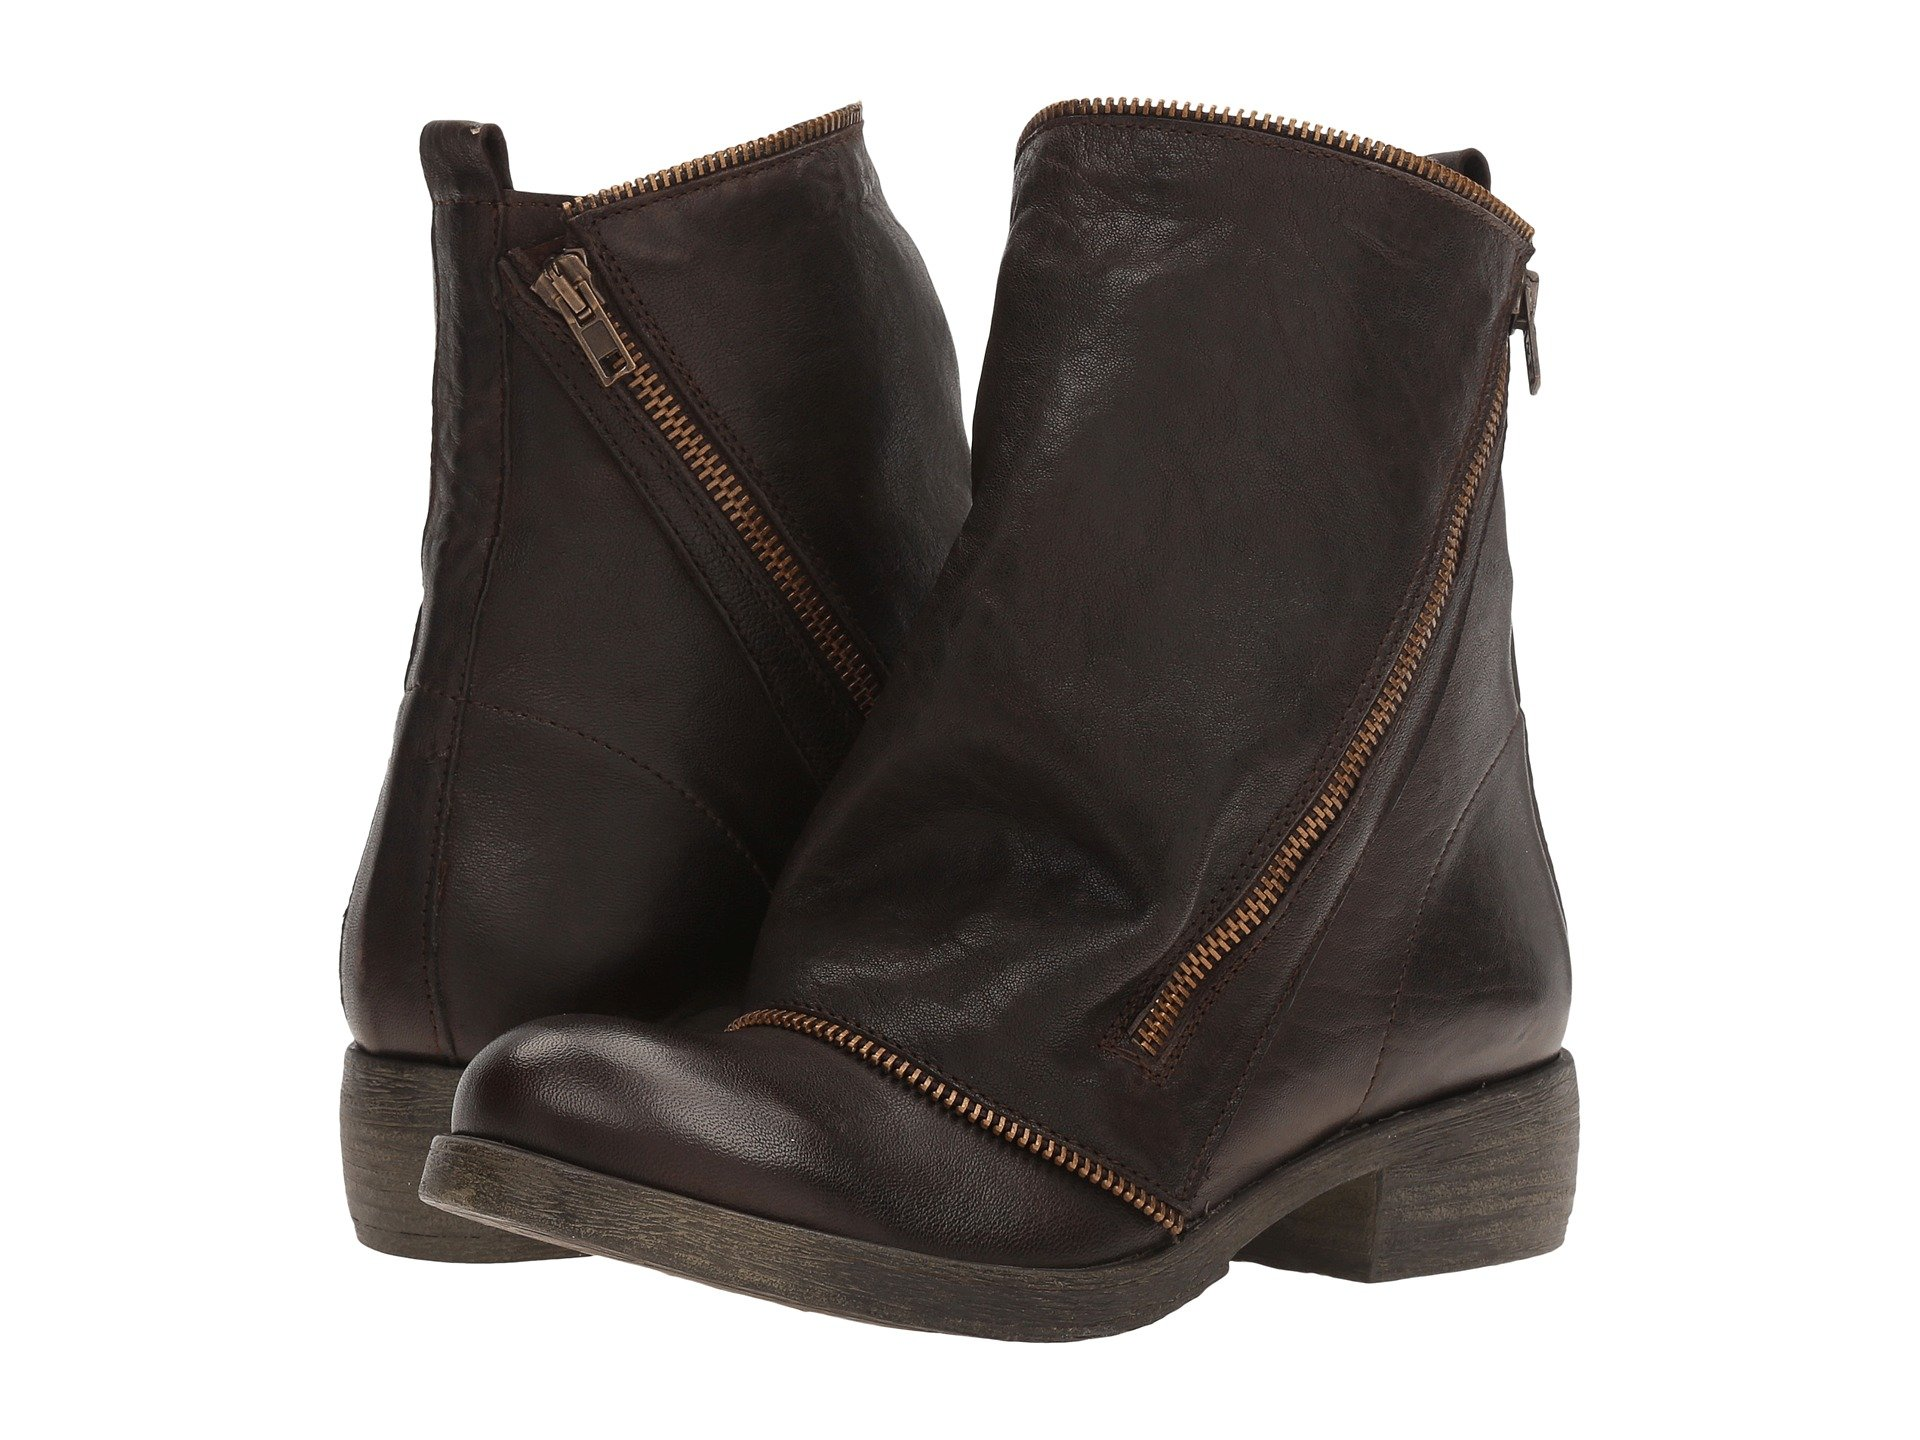 MASSIMO MATTEO Low Boot With Zipper, Testa Di Moro